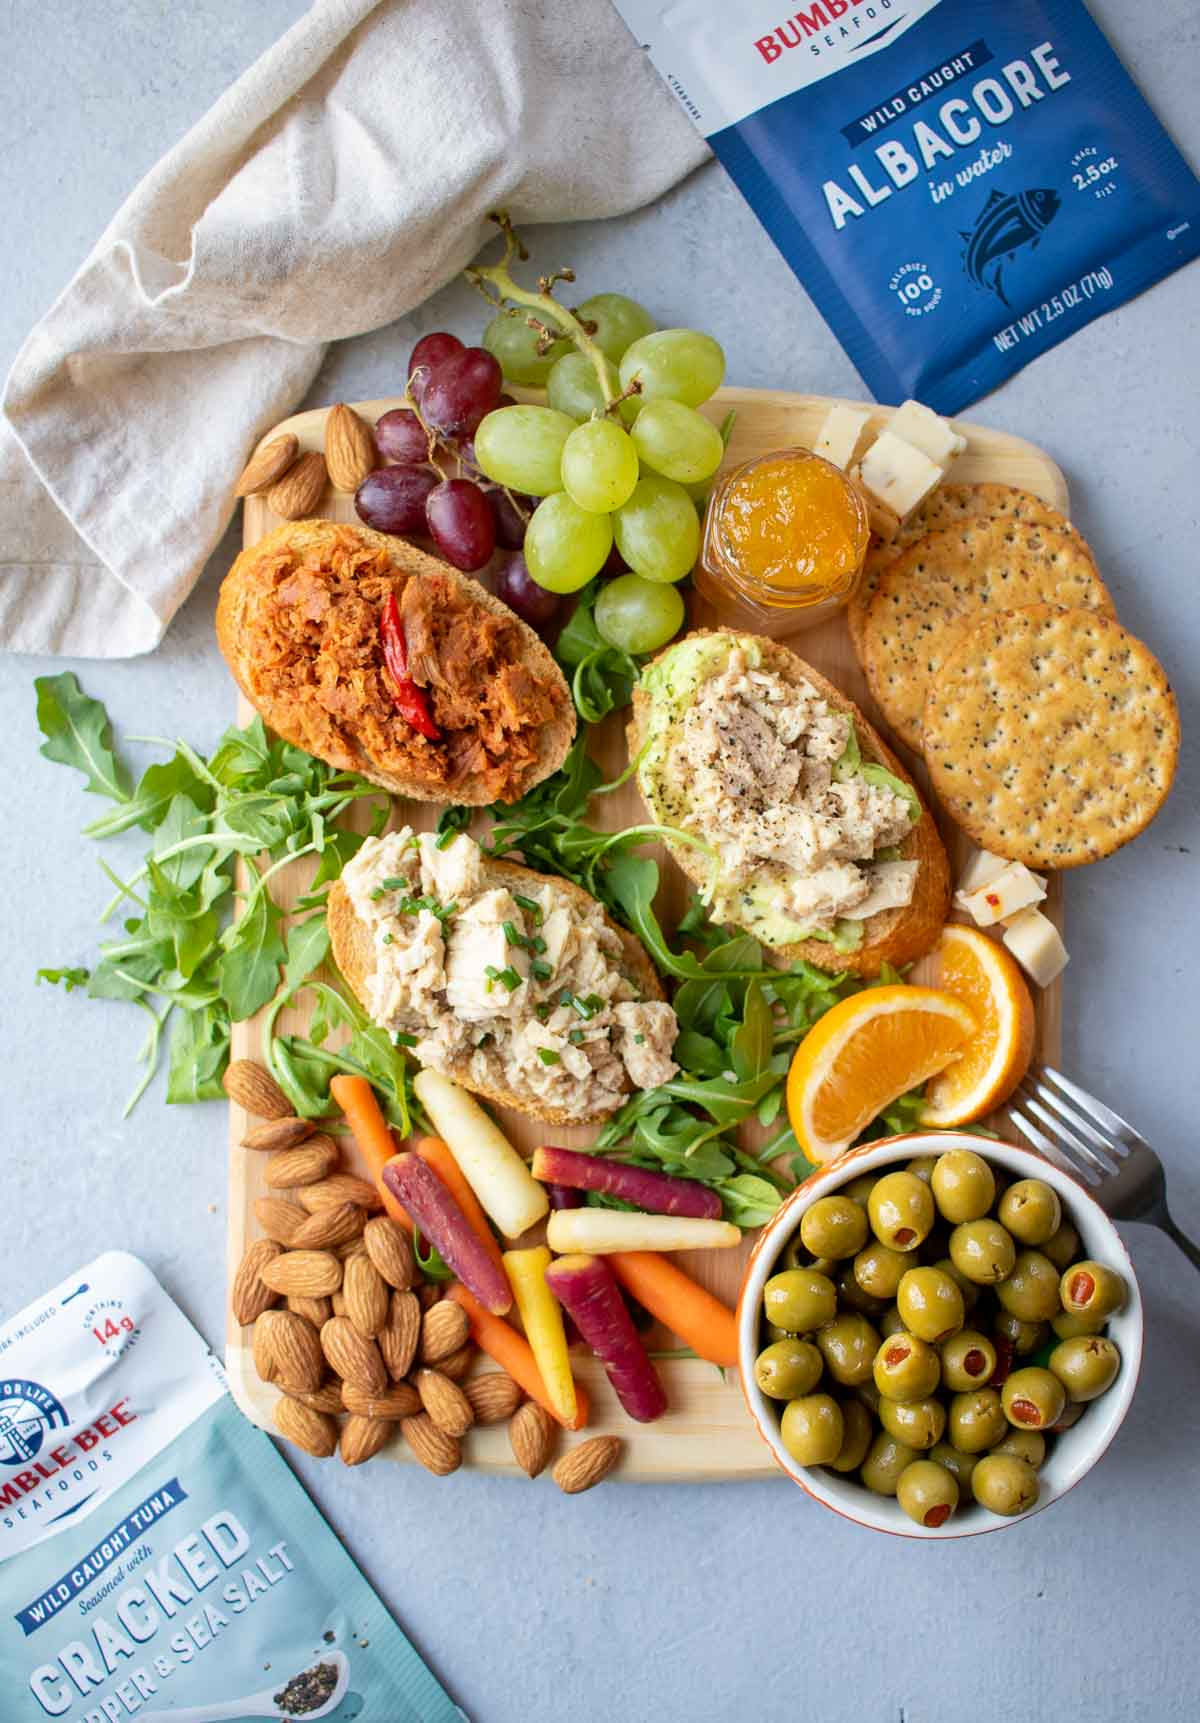 Snack board with tuna toasts, fruit, vegetables, nuts and packets of Bumble Bee Tuna